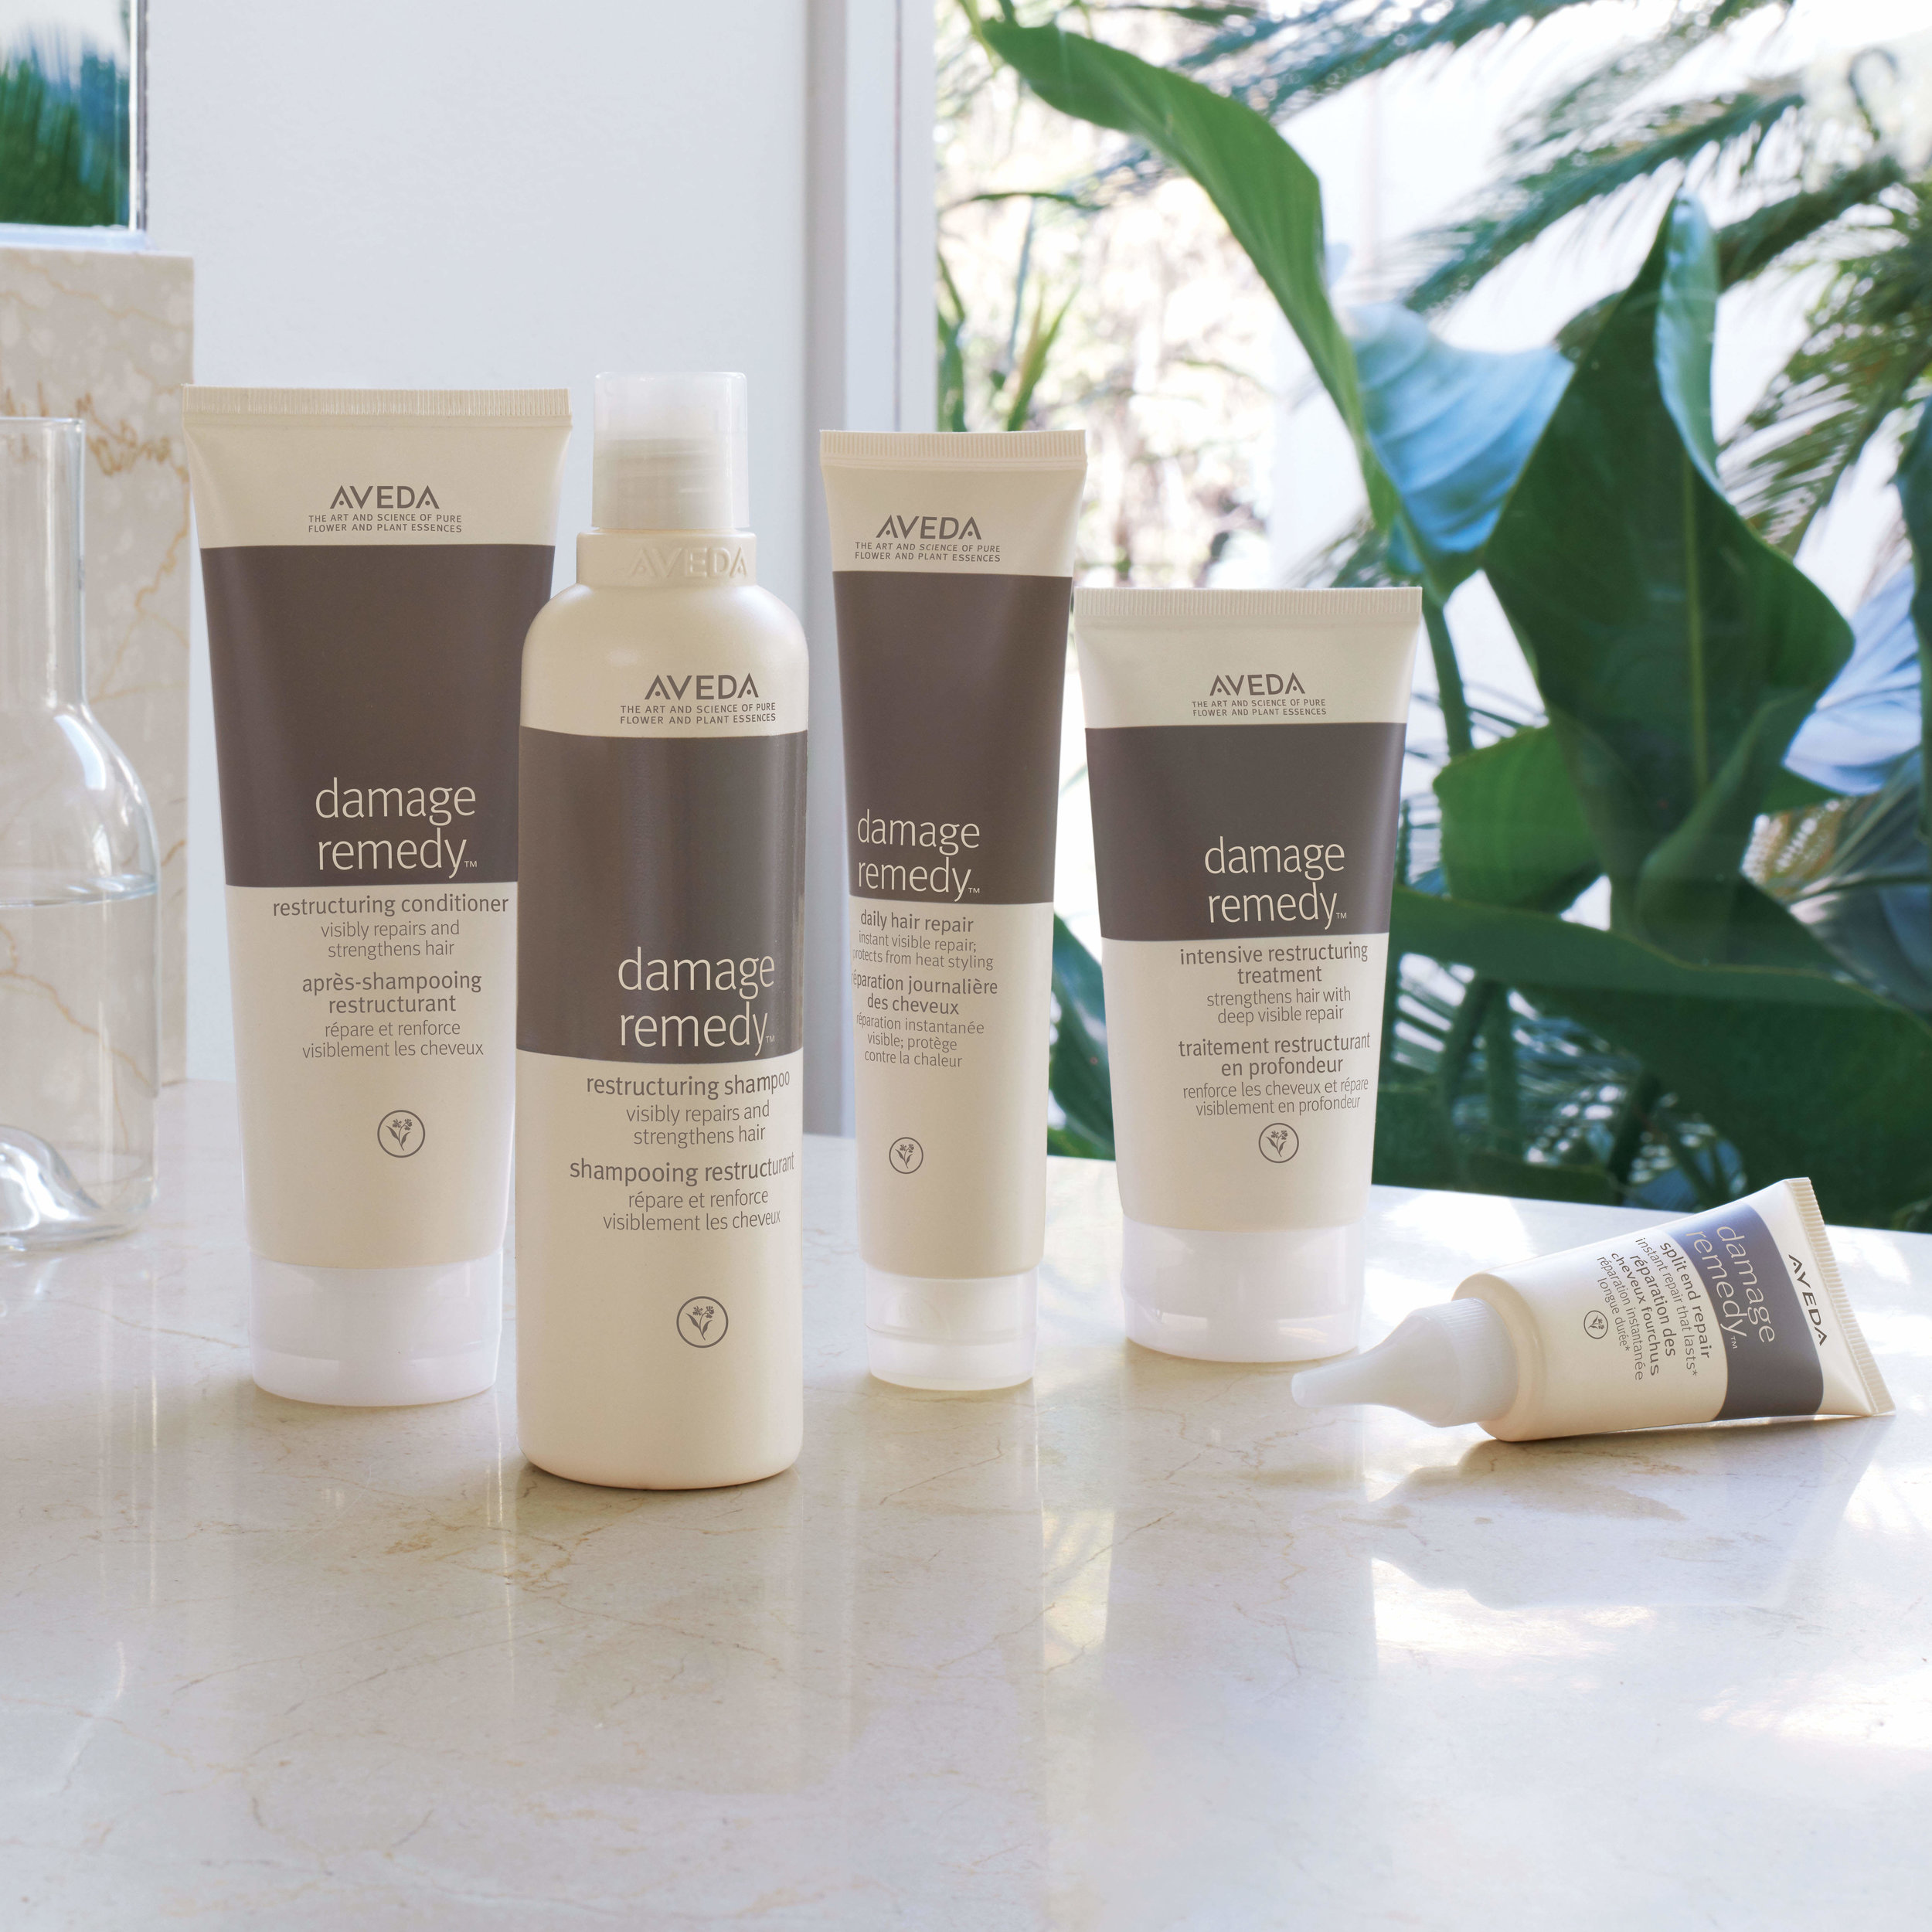 Aveda Damage Remedy range.jpg